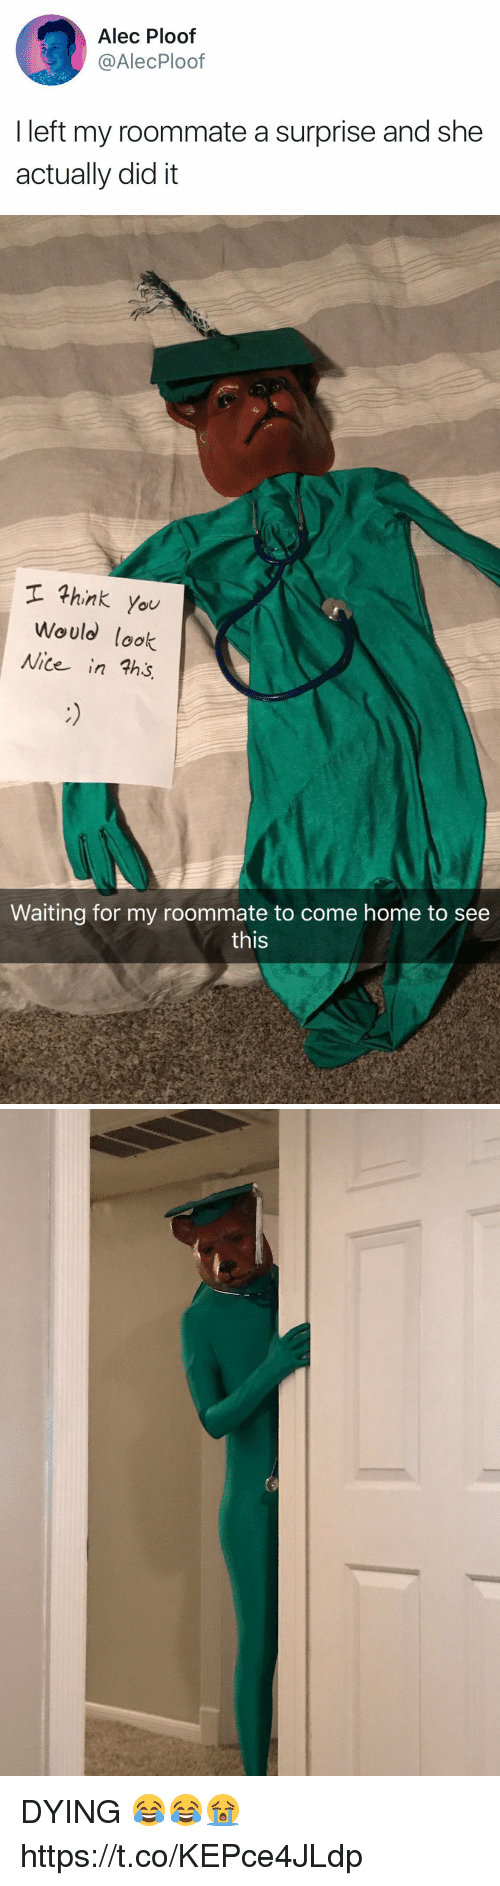 Roommate, Home, and Girl Memes: Alec Ploof  @AlecPloof  I left my roommate a surprise and she  actually did it   hink you  Would look  Nite in ths  Waiting for my roommate to come home to see  this DYING 😂😂😭 https://t.co/KEPce4JLdp